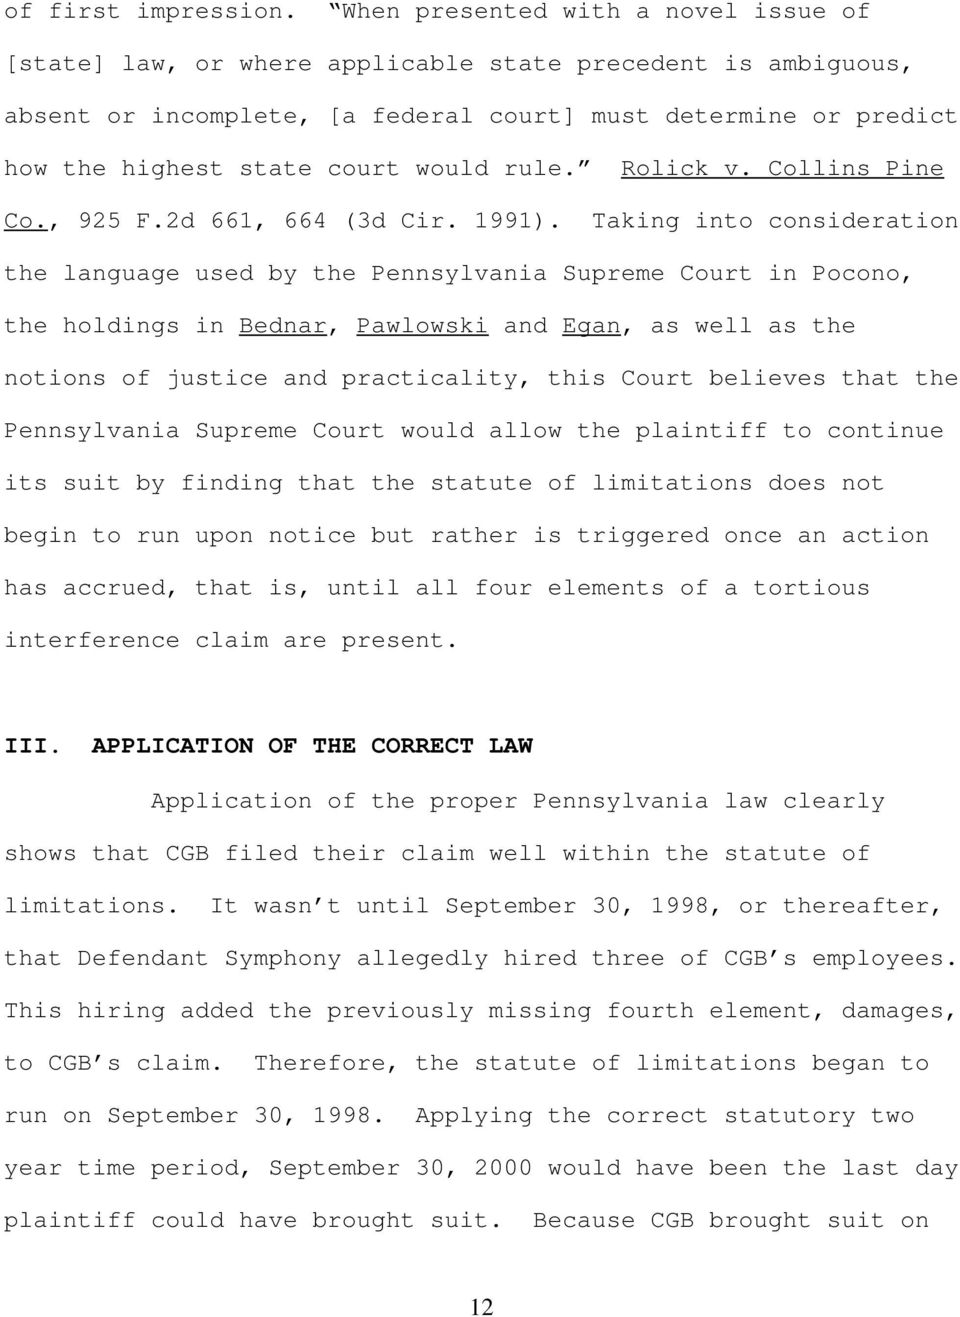 rule. Rolick v. Collins Pine Co., 925 F.2d 661, 664 (3d Cir. 1991).